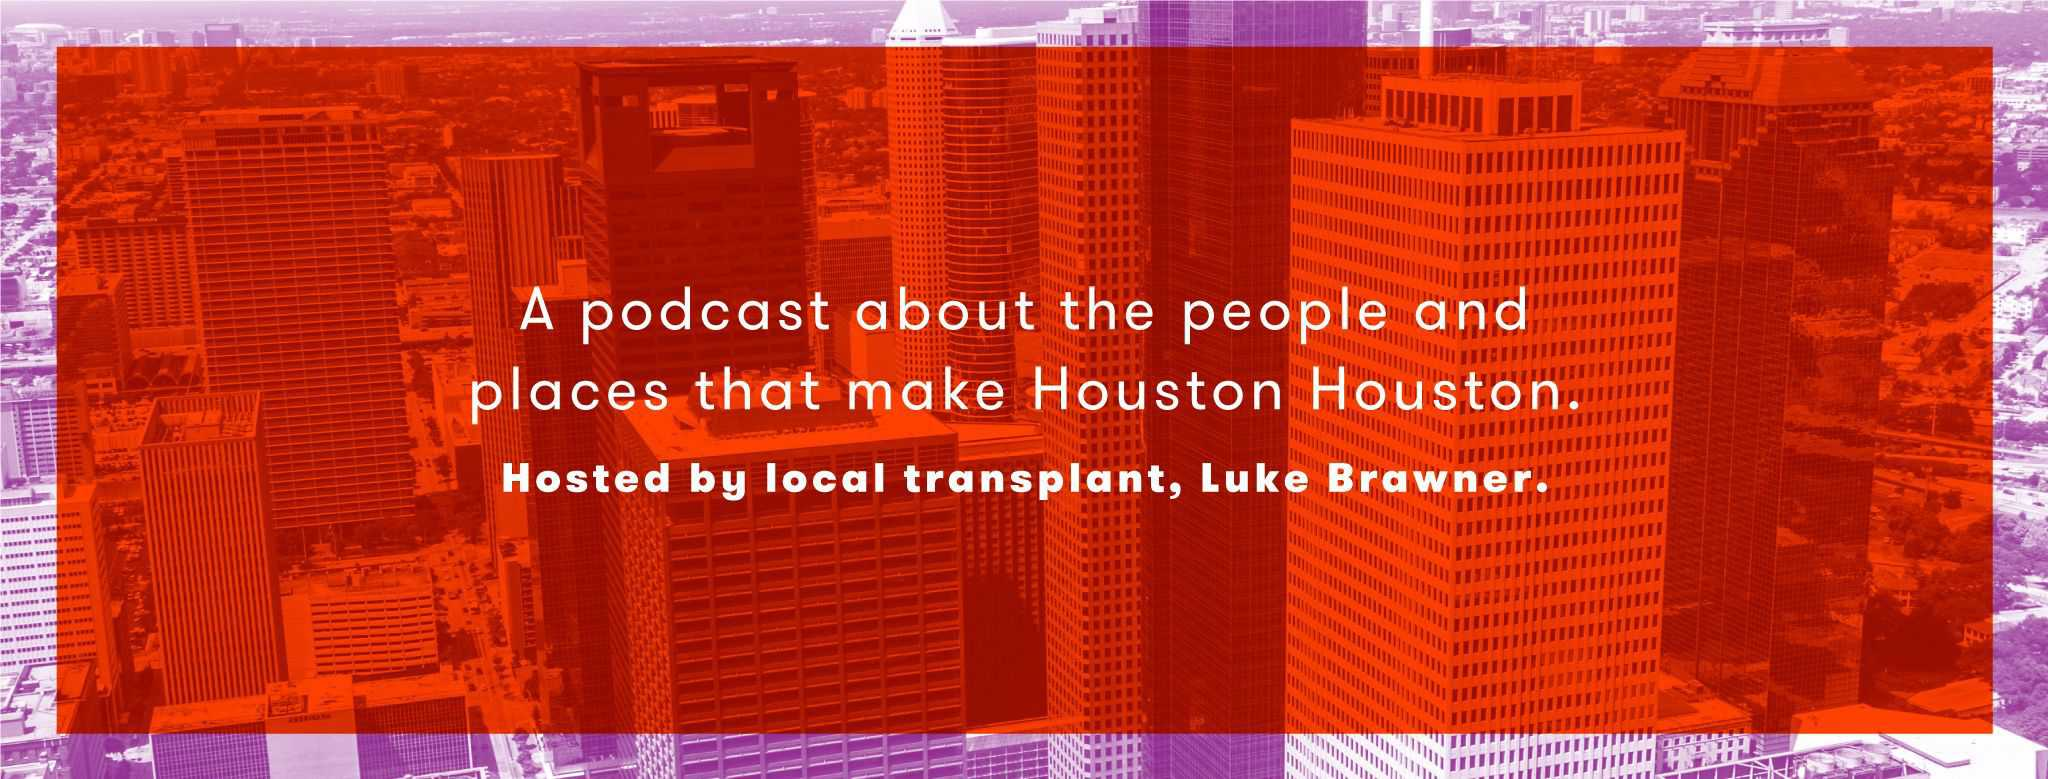 Podcast cover image for Luke Brawner's podcast, the H | Designed by Field of Study: A branding and graphic design consultancy | Houston TX | Jennifer Blanco & John Earles